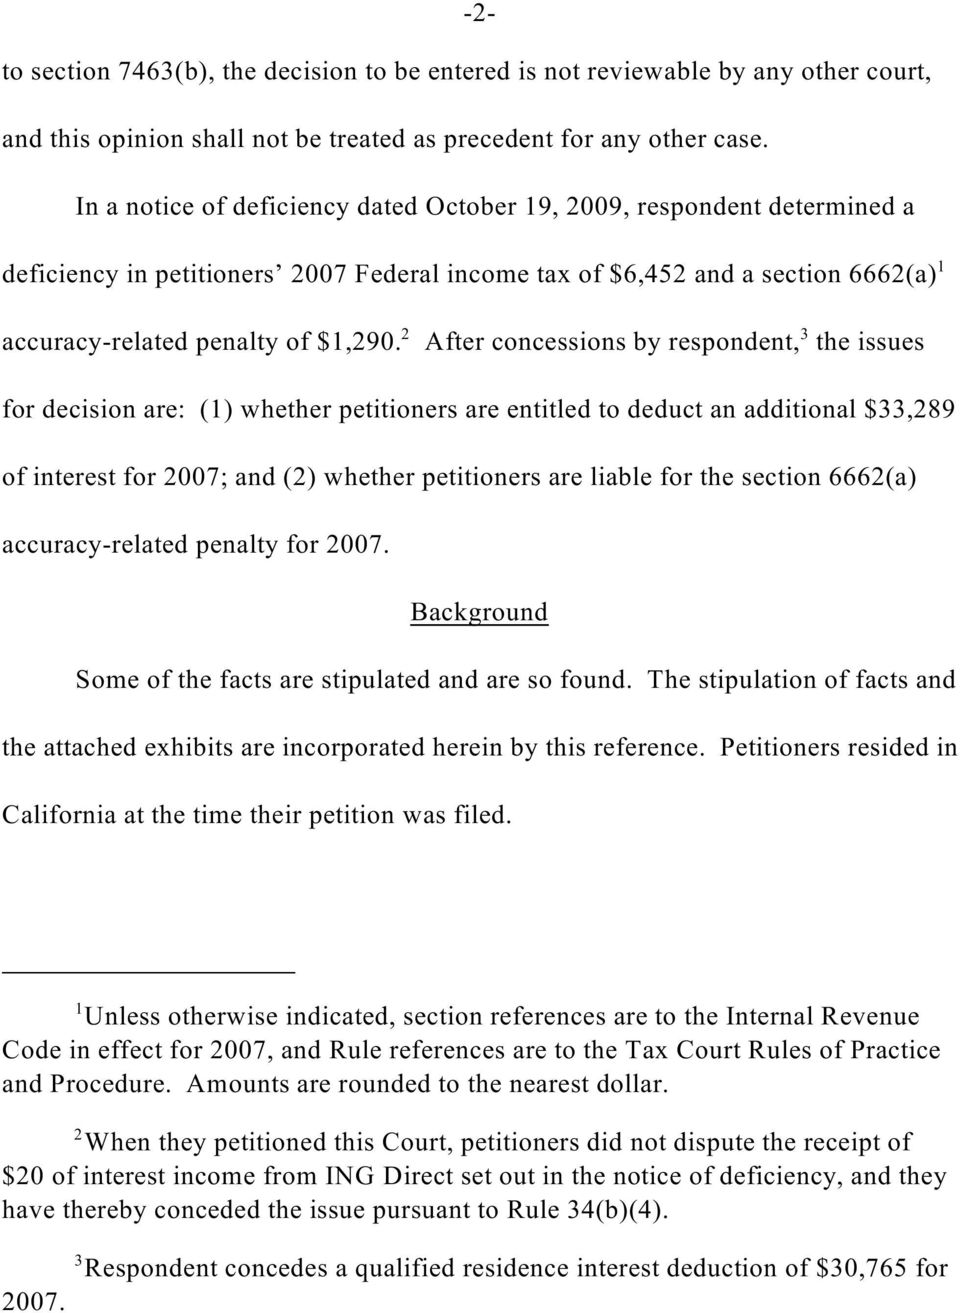 After concessions by respondent, the issues for decision are: (1) whether petitioners are entitled to deduct an additional $33,289 of interest for 2007; and (2) whether petitioners are liable for the